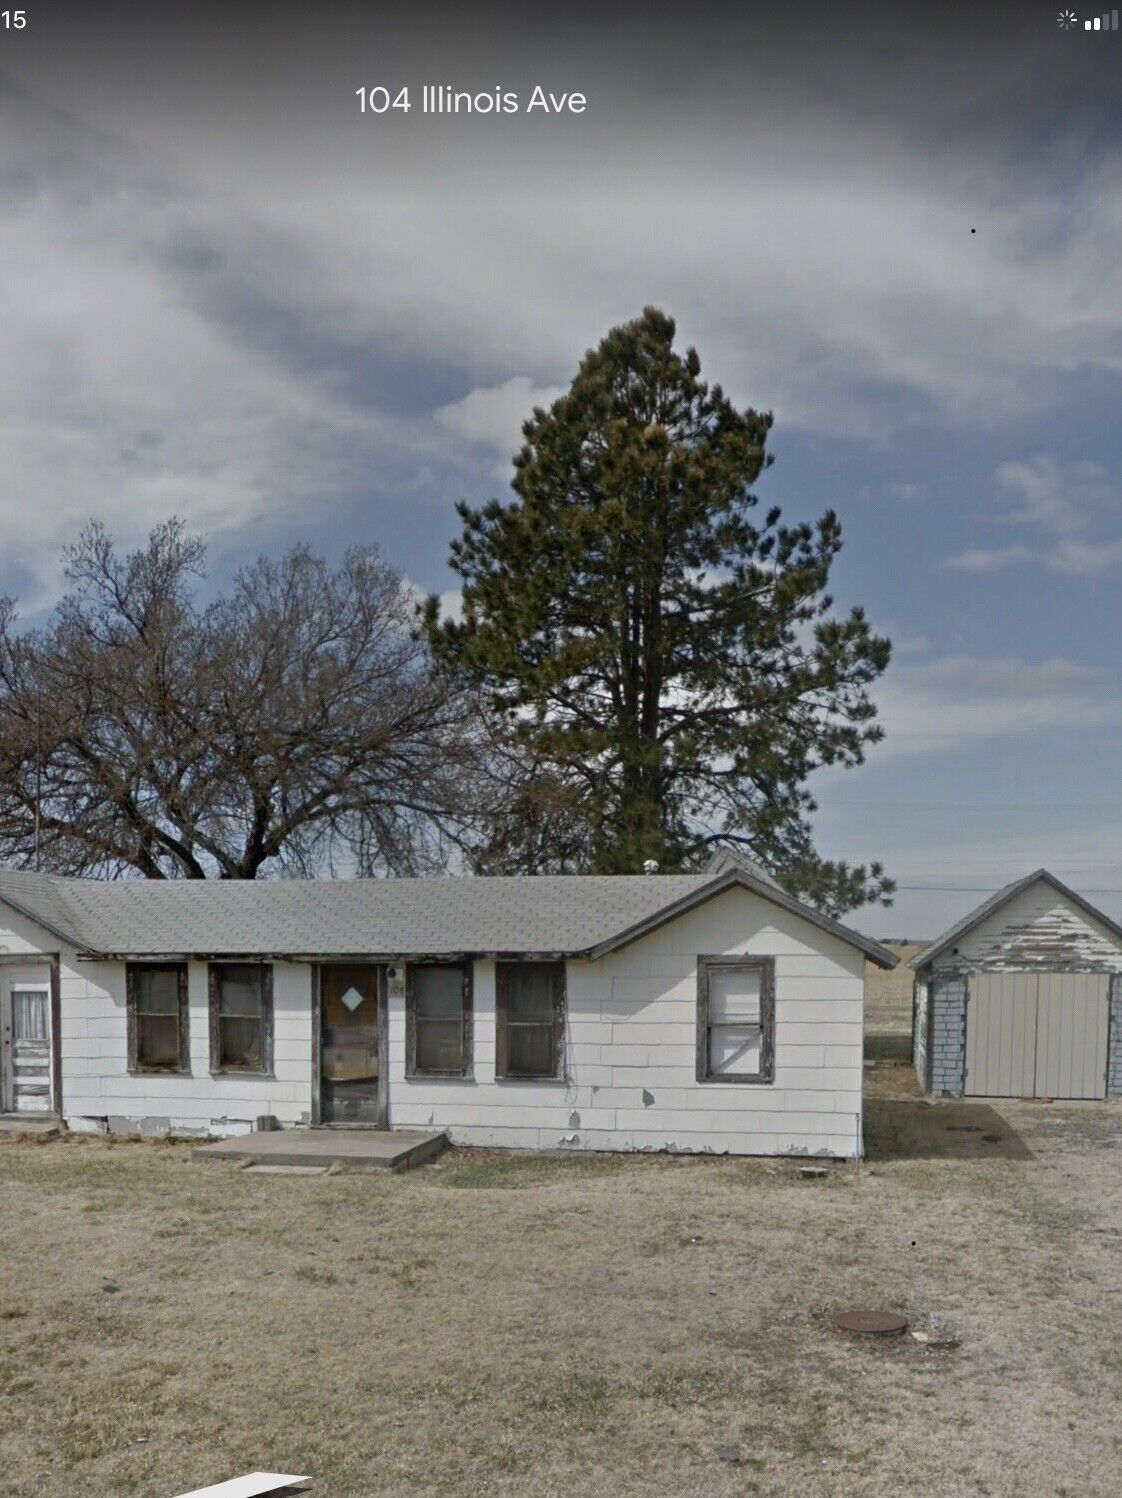 House On 1 1/2 Lots In Central Kansas - $6,600.00